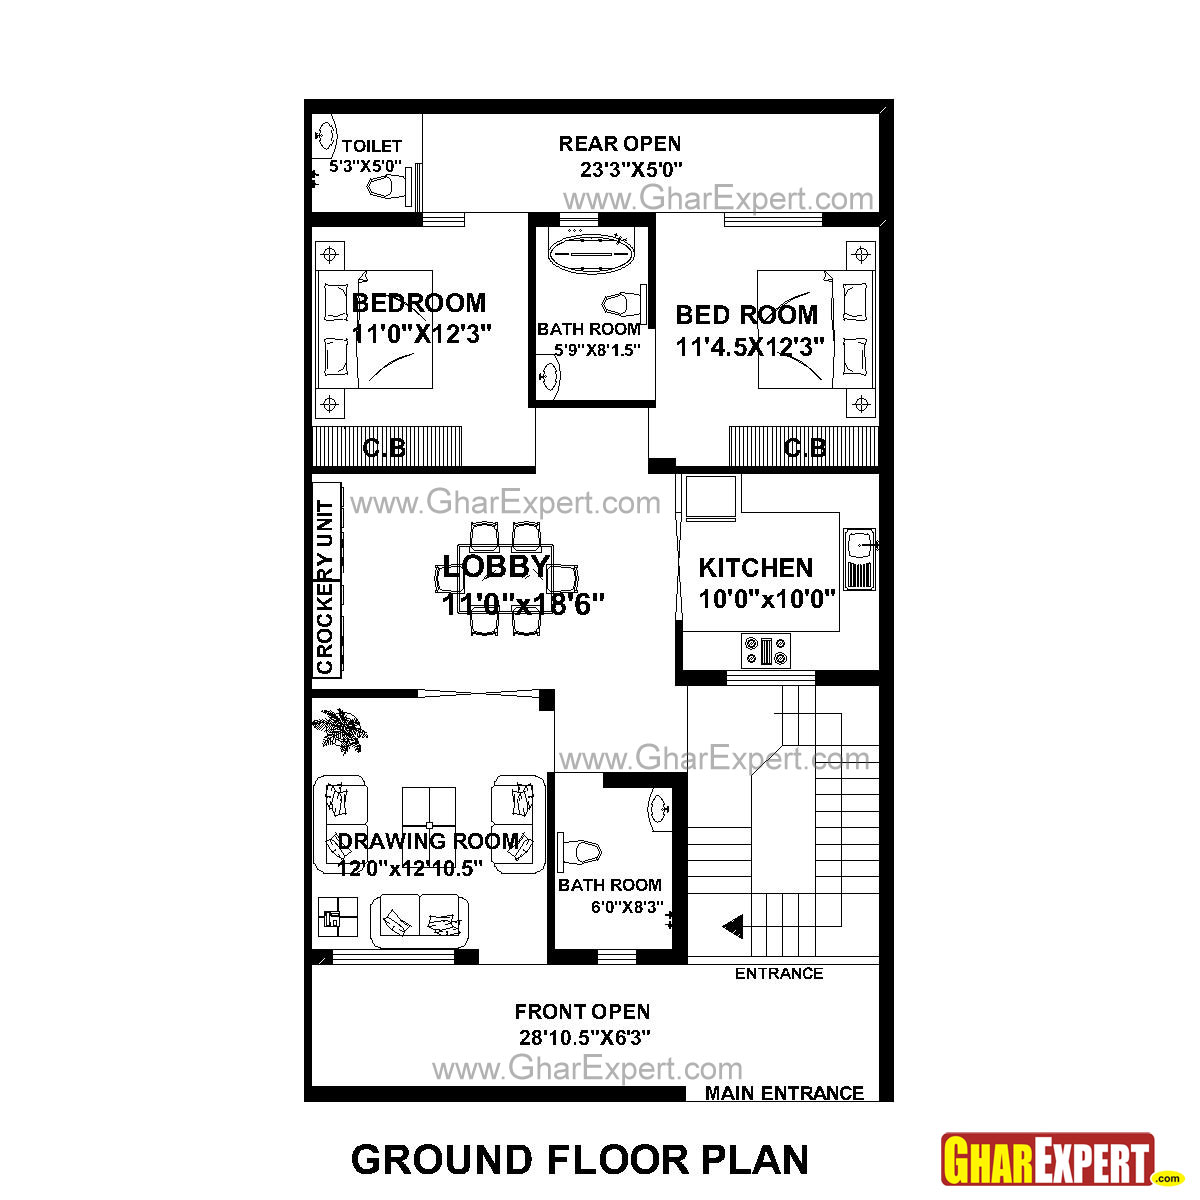 House plan for 30 feet by 51 feet plot plot size 170 How to calculate room size in square feet